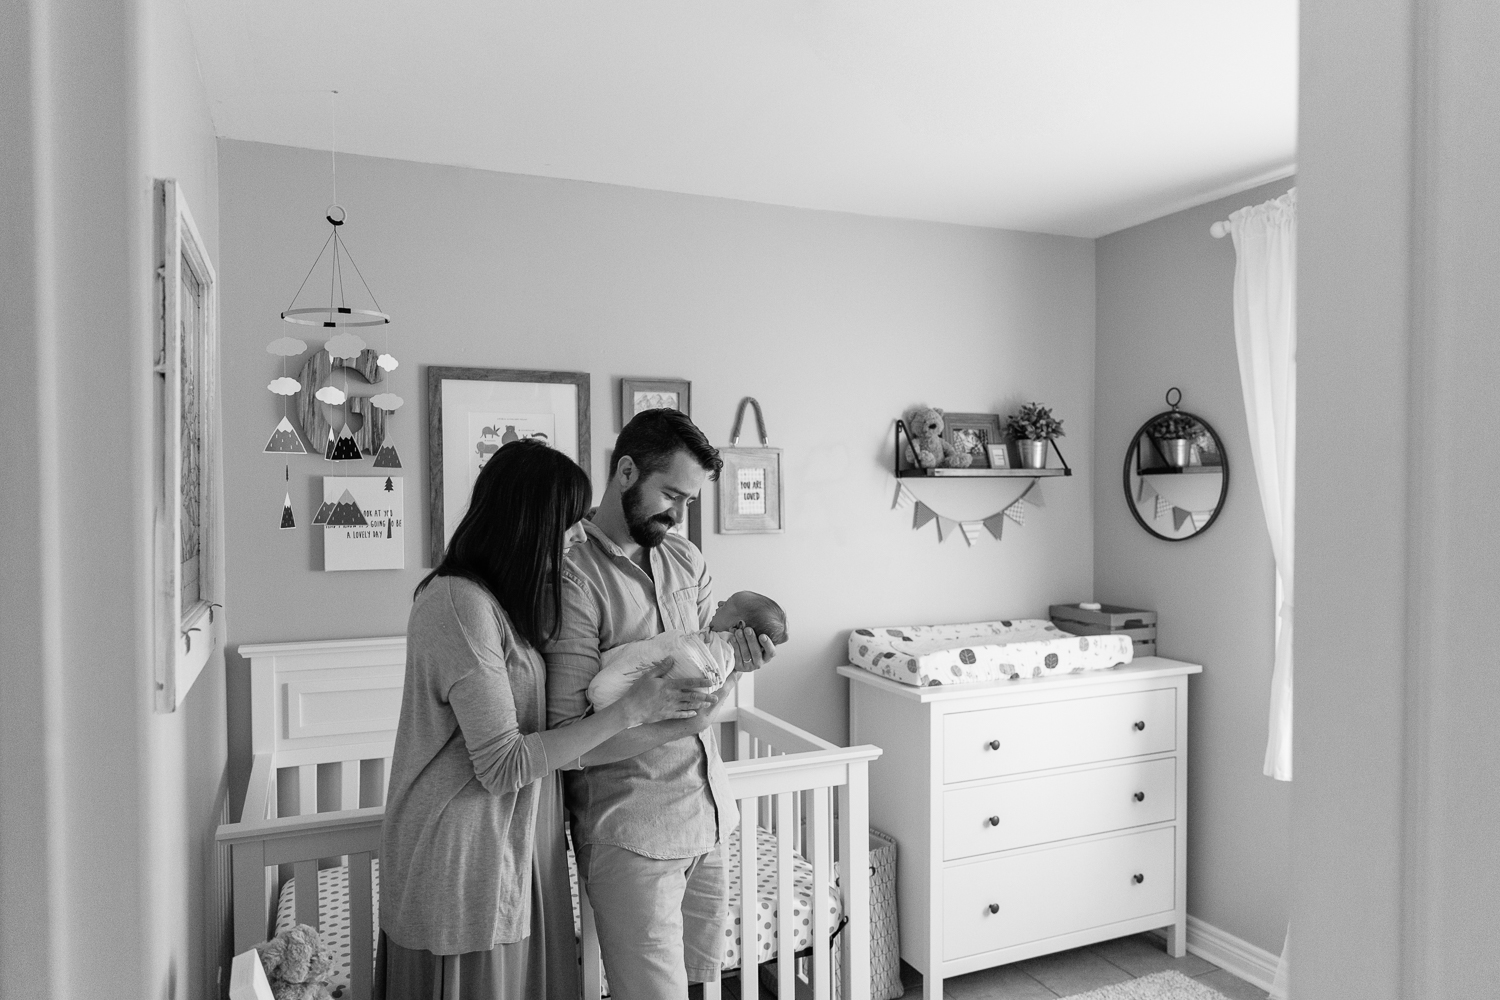 new parents standing in nursery in front of crib, dad holding and looking at swaddled 3 week old baby boy, mom standing next to husband with hand on son - Stouffville Lifestyle Photography